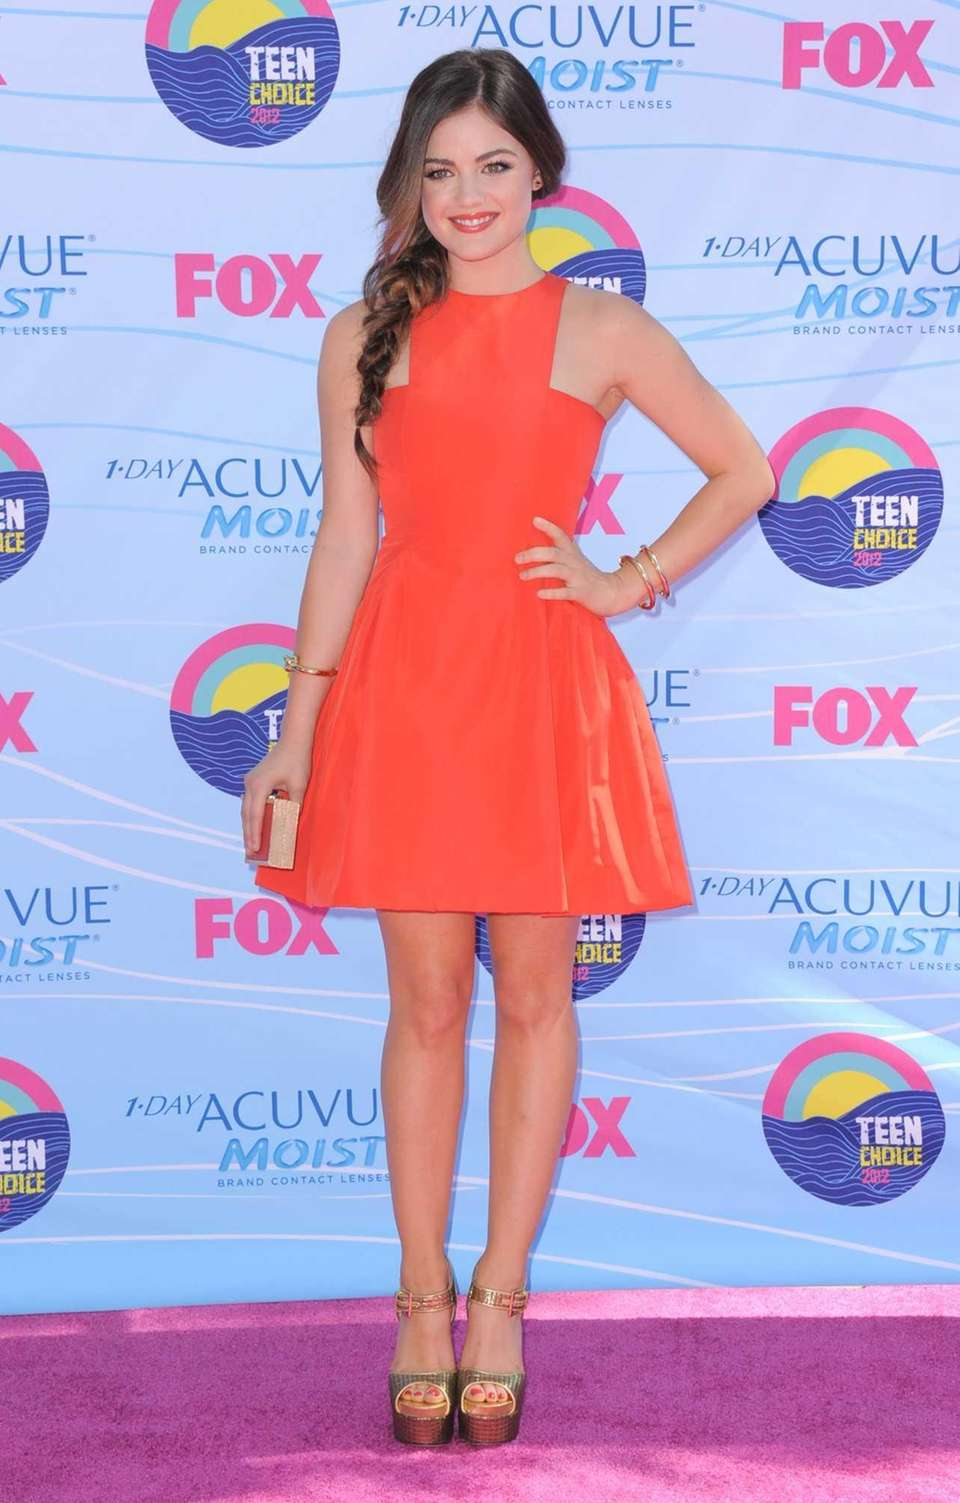 Lucy Hale arrives at the Teen Choice Awards